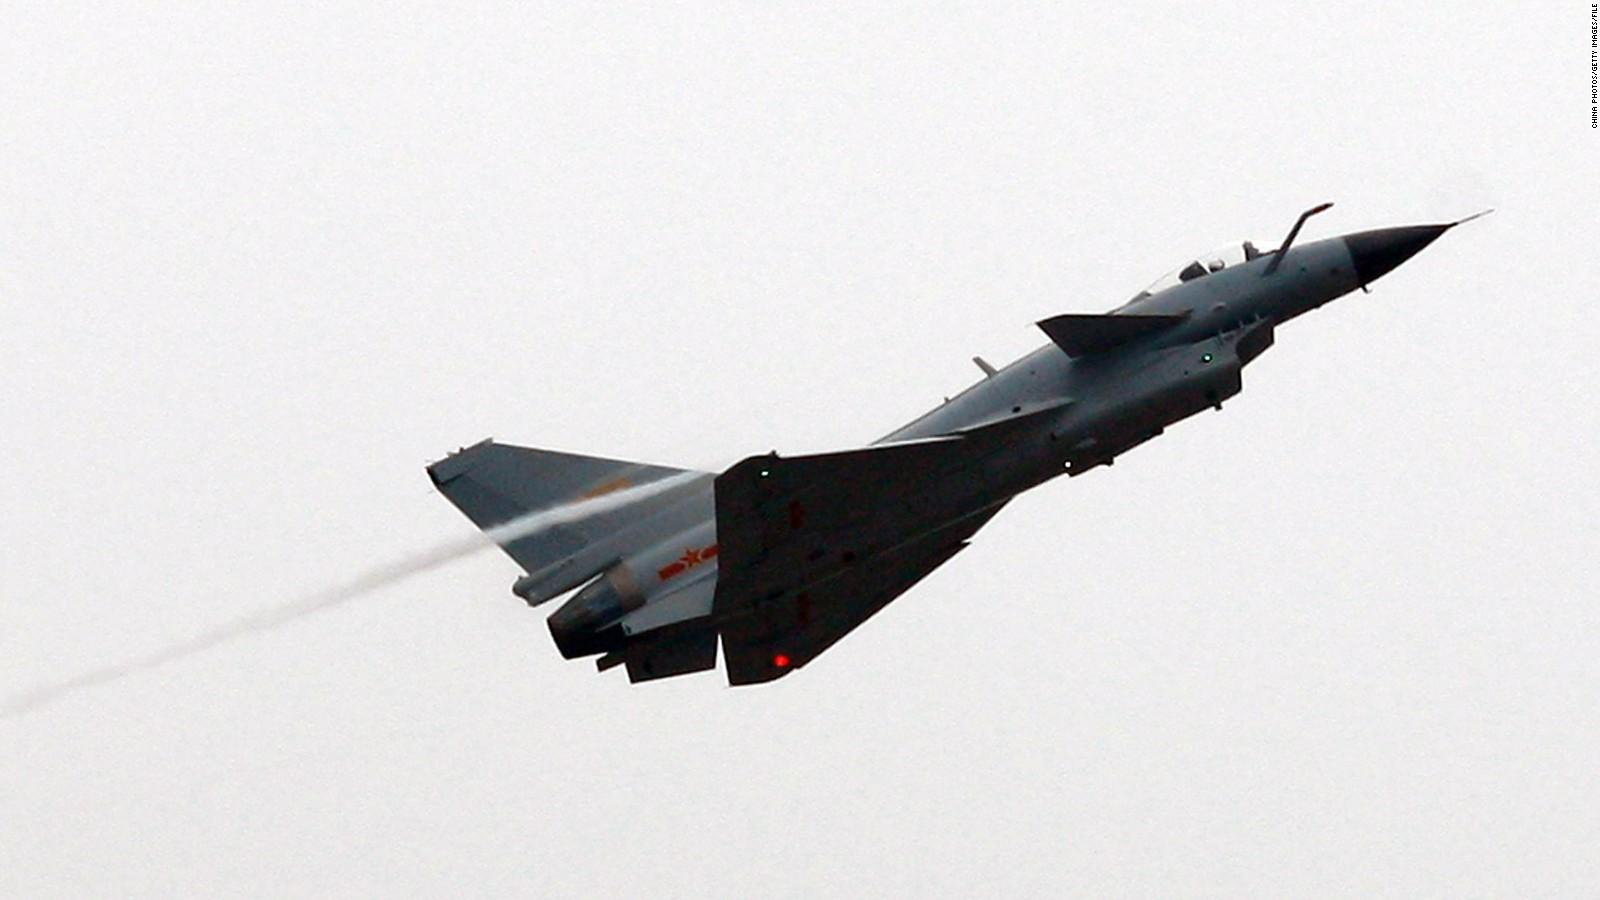 chinese jets buzz us aircraft again cnn video